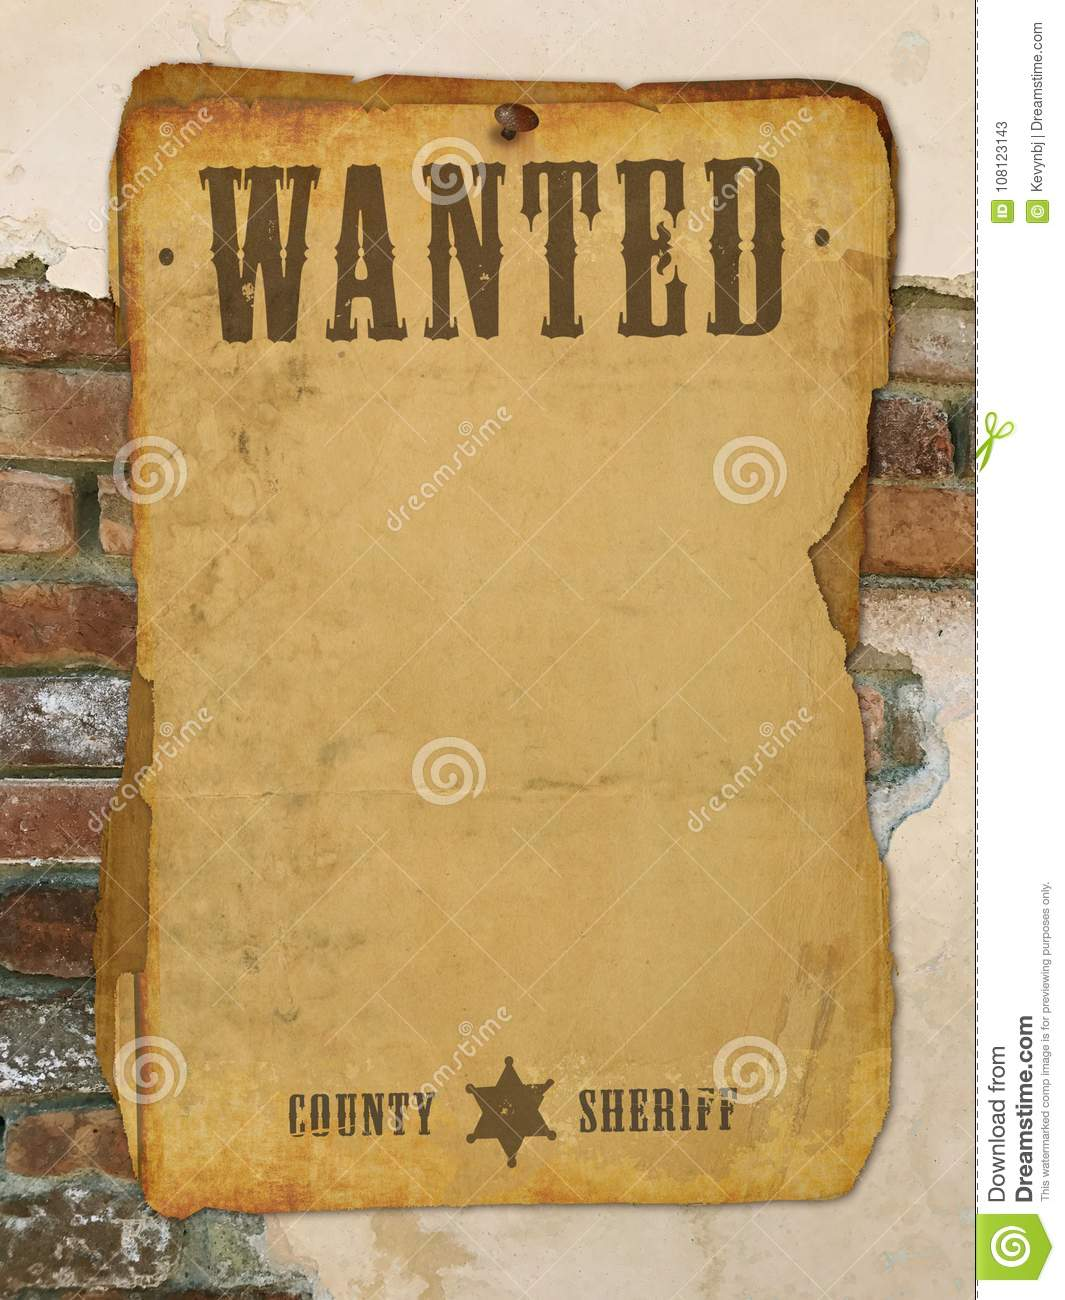 Wanted Poster Old West stock illustration. Illustration of cowboy ...